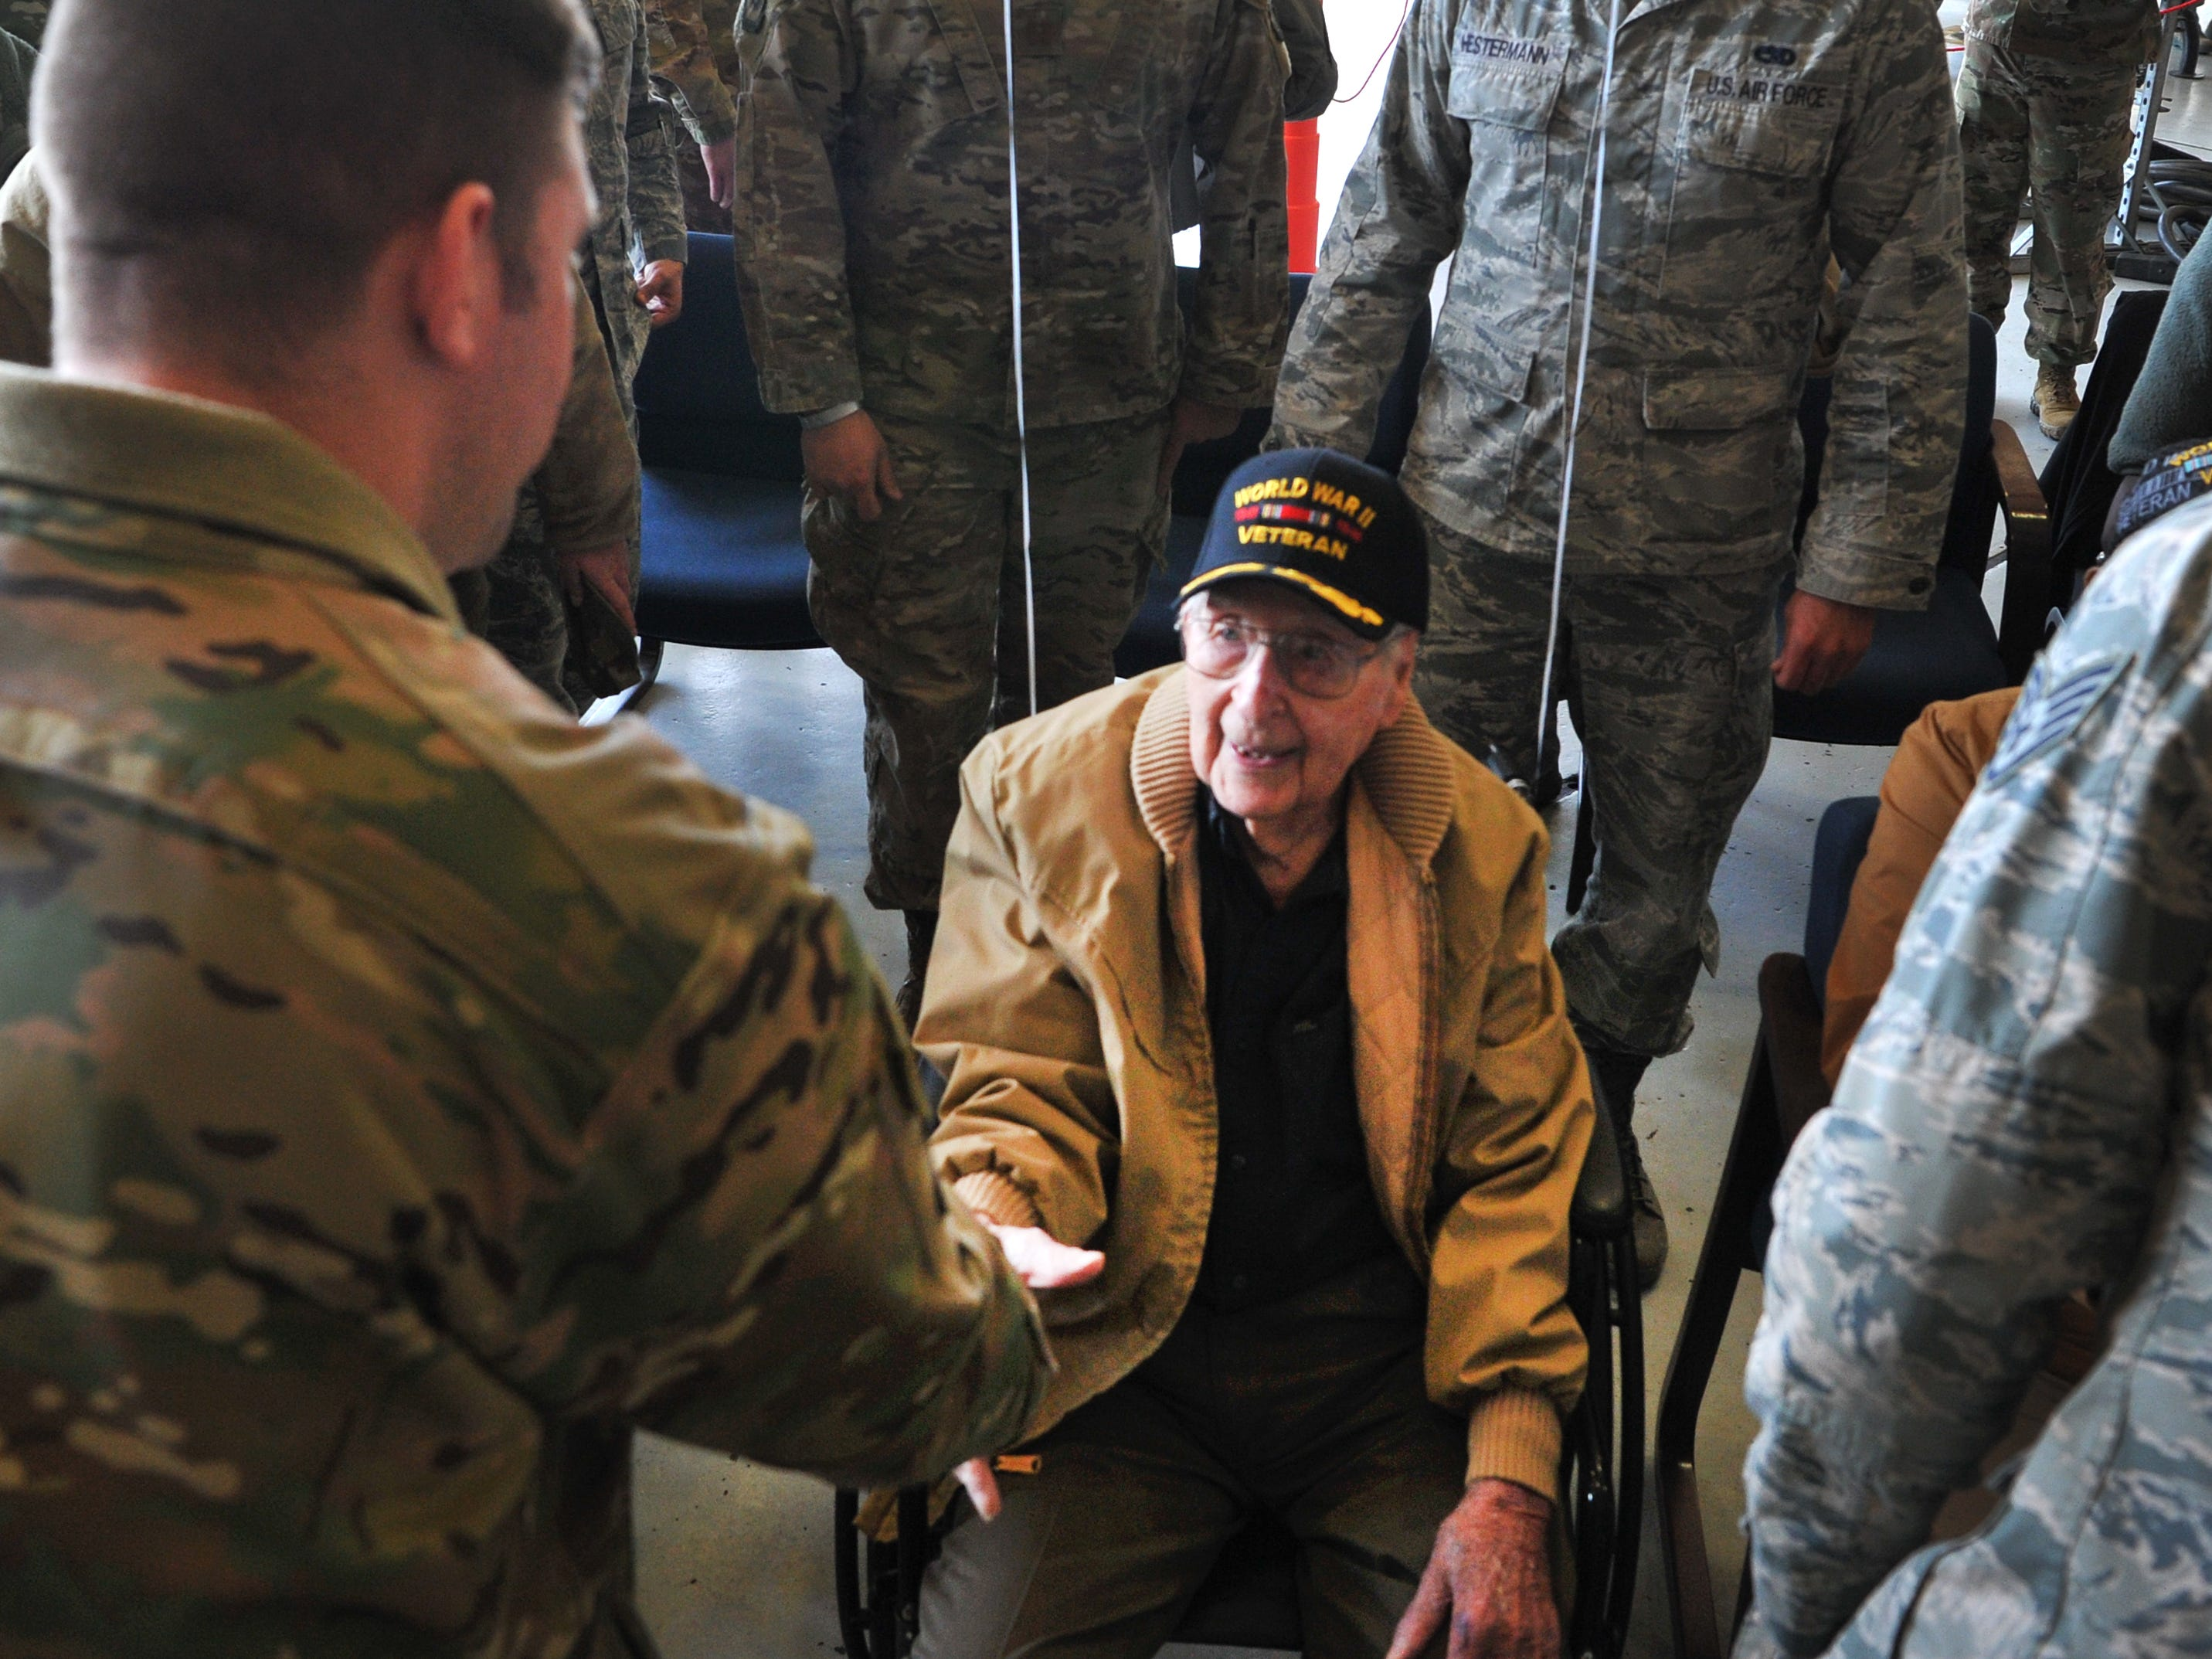 Sheppard Air Force Base airmen took the opportunity to meet Army Air Corps Staff Sgt. Joe Cuba, a man that became a social media phenomenon after he posted a request for 100 birthday cards for his 100th birthday.